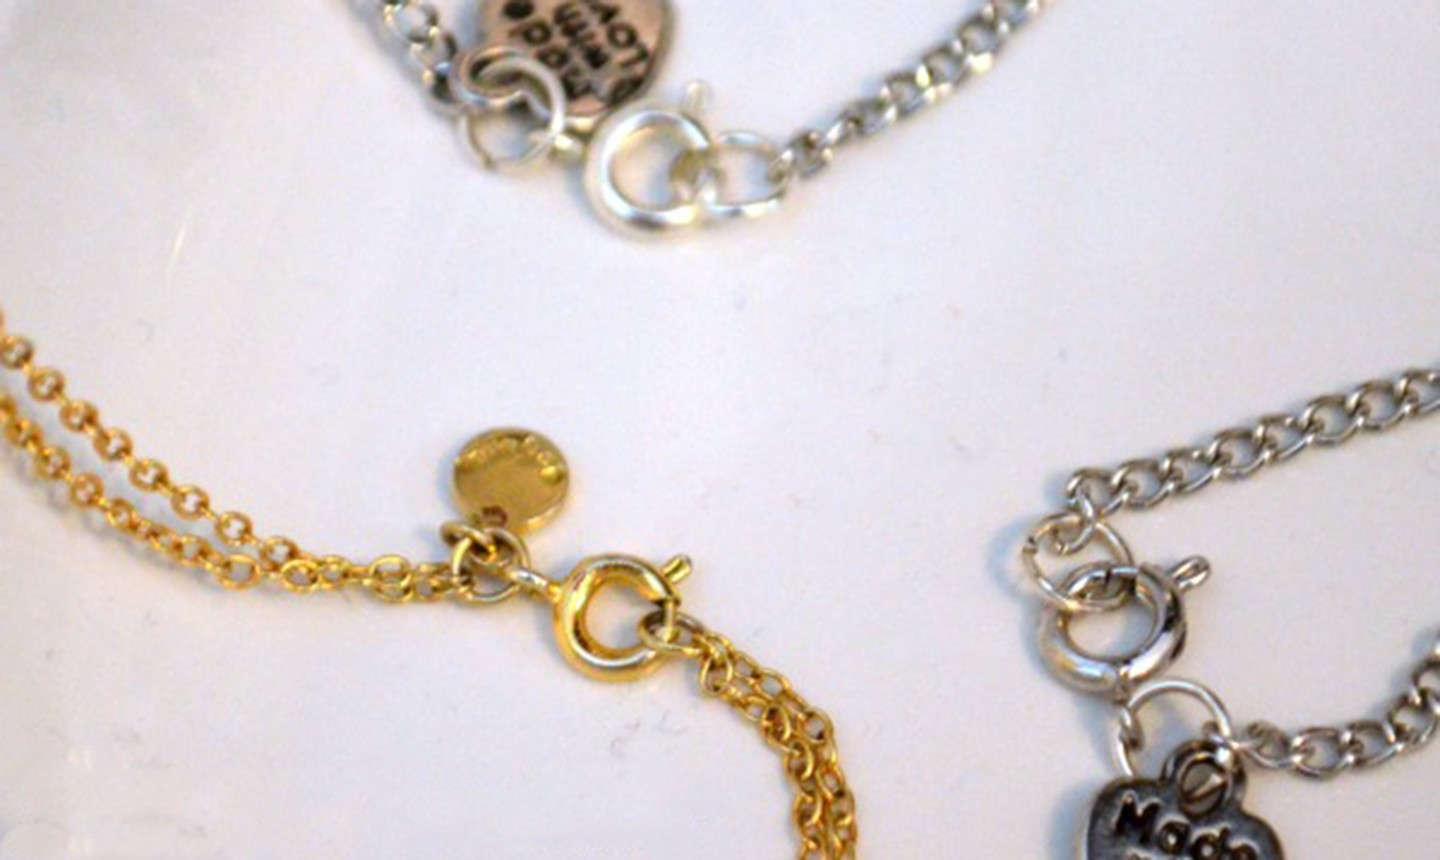 Spring Ring Clasp